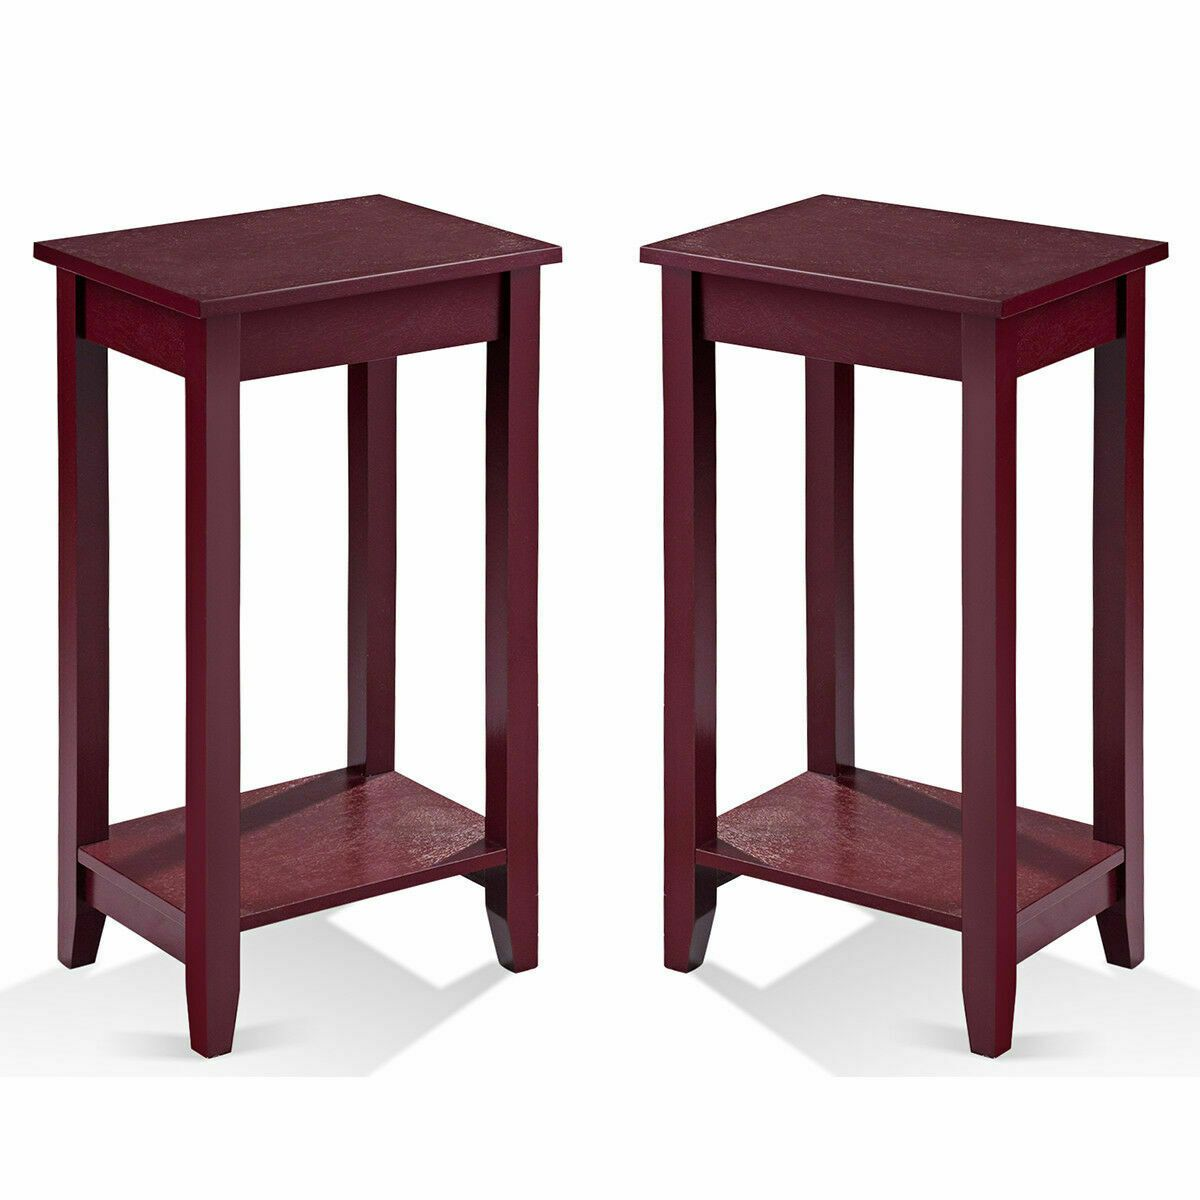 Set Of 2 Tall Nightstand End Table Coffee Stand Sofa Side Accent Furniture Sofa Table Ideas Of Sofa Furniture Prices Side Table Wood Modern Side Table Wood